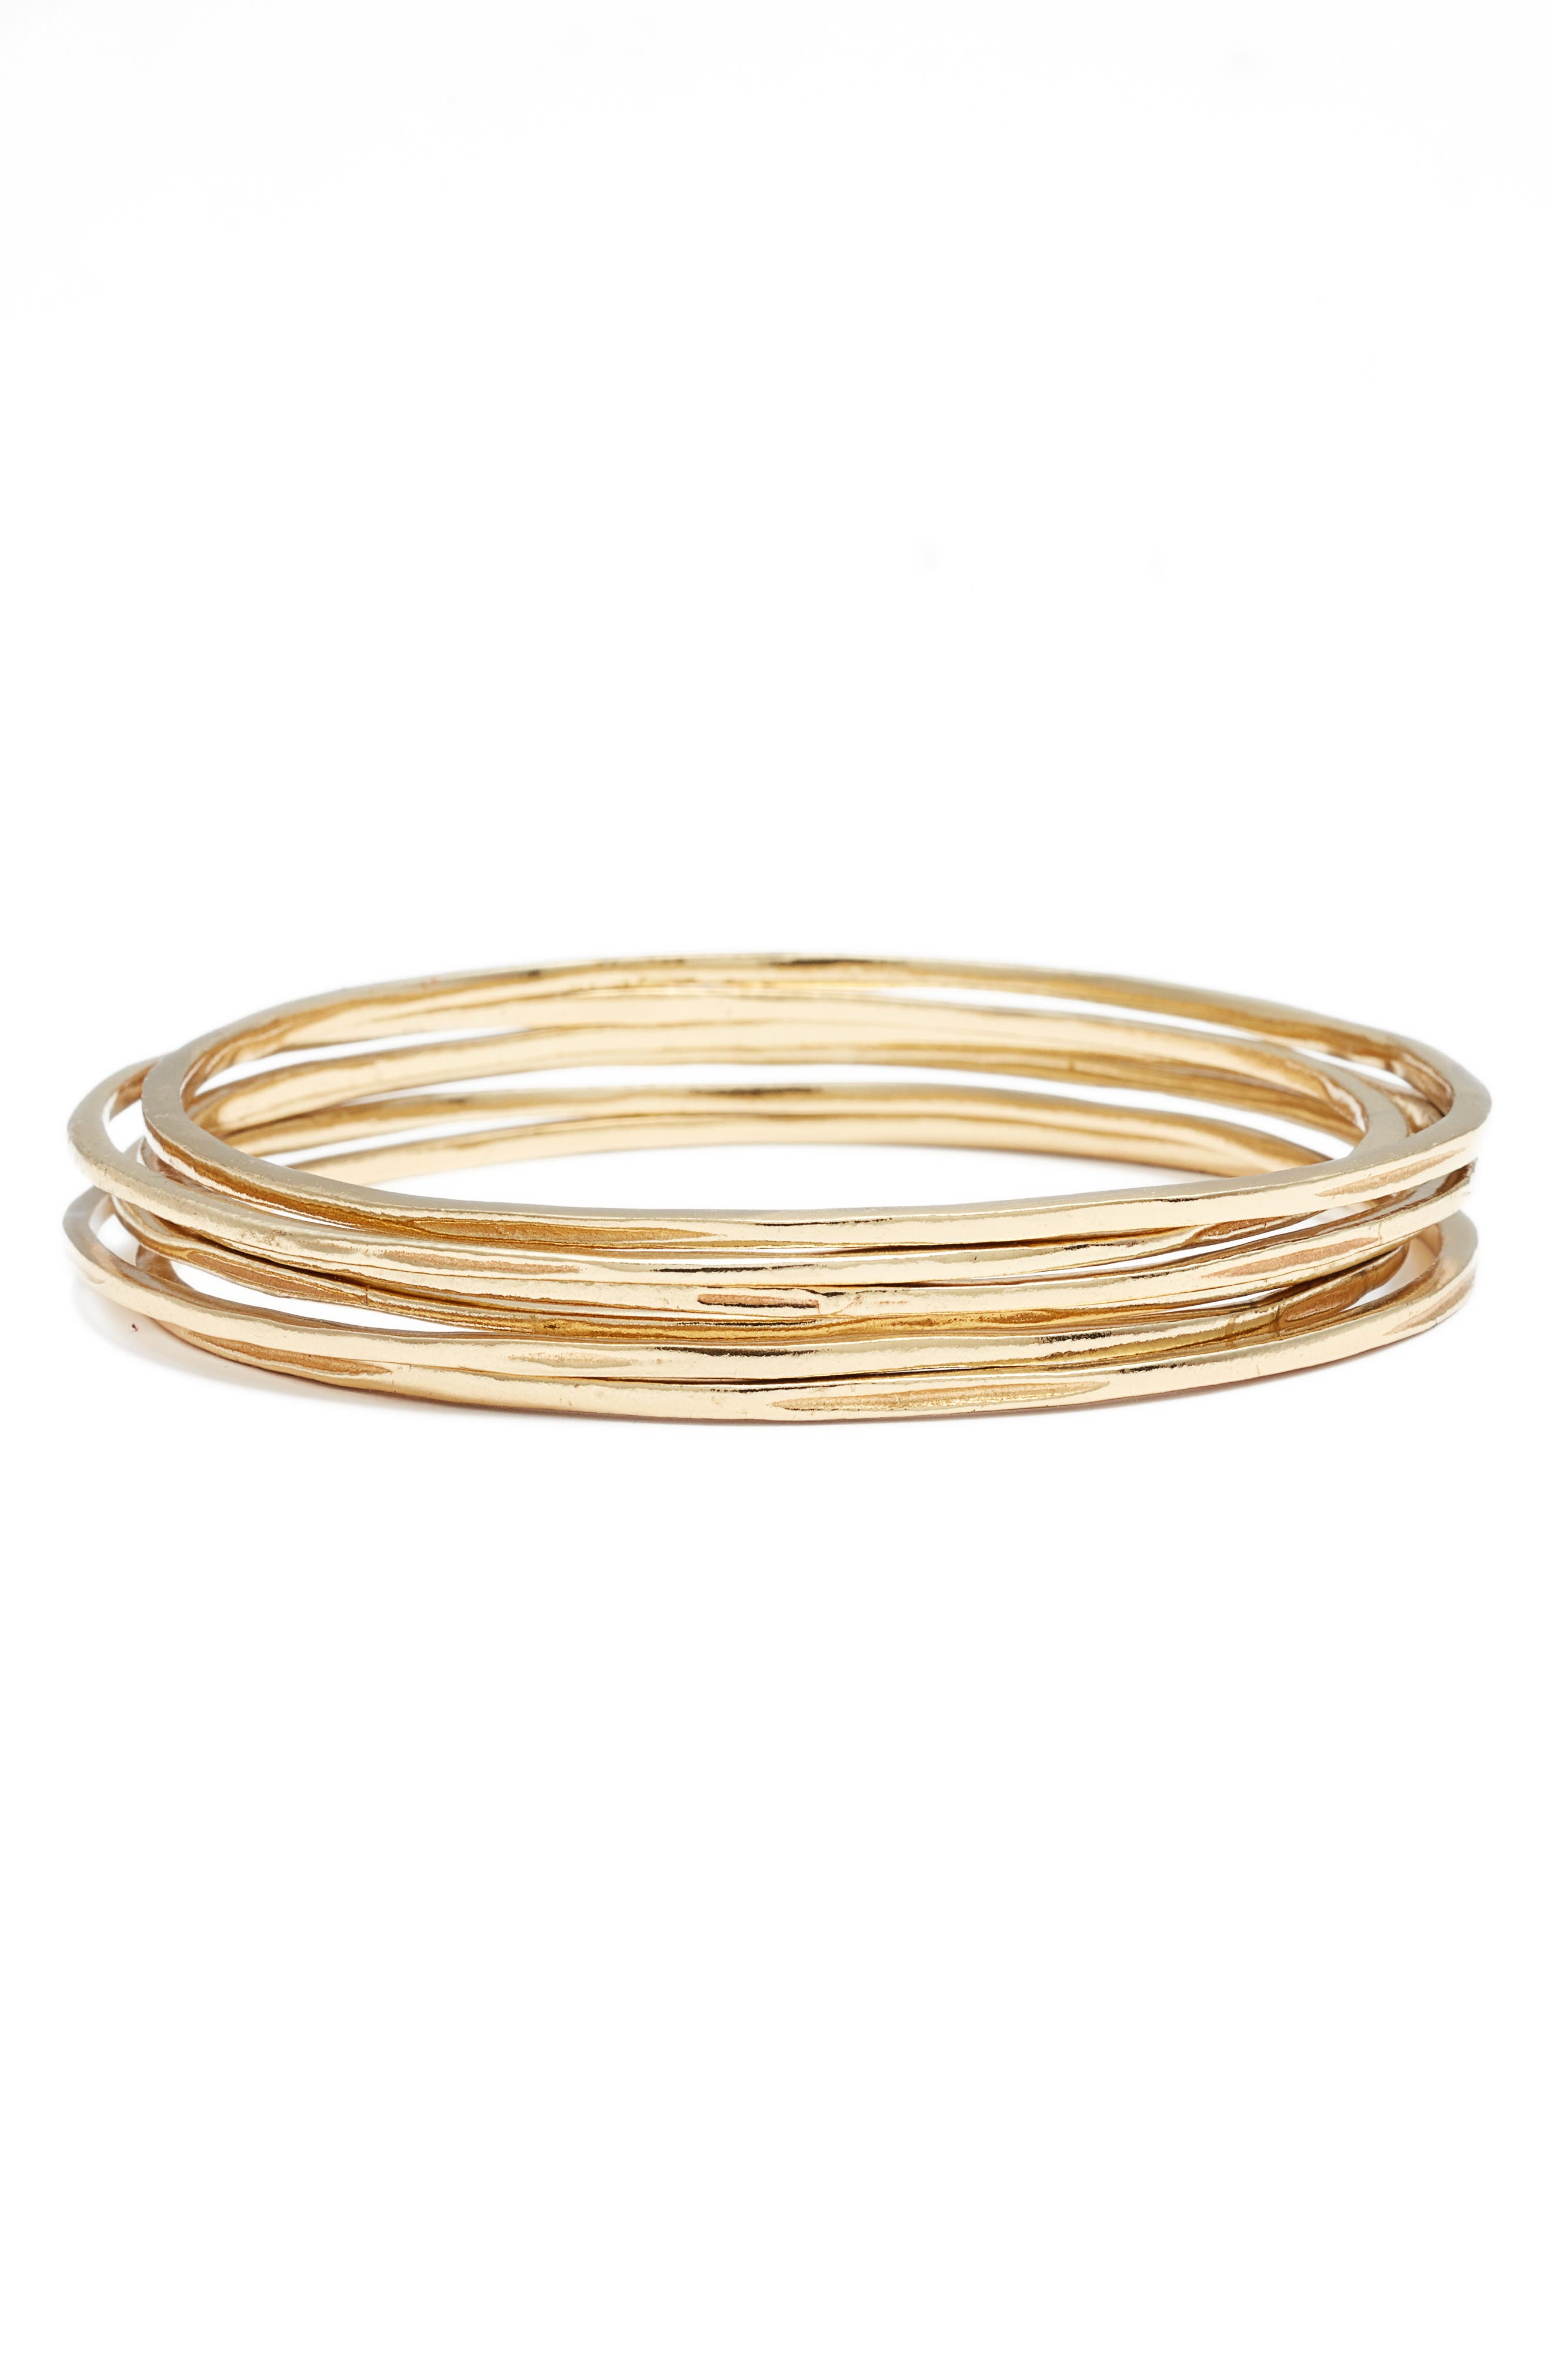 INK + ALLOY Set of 4 Stackable Bangles